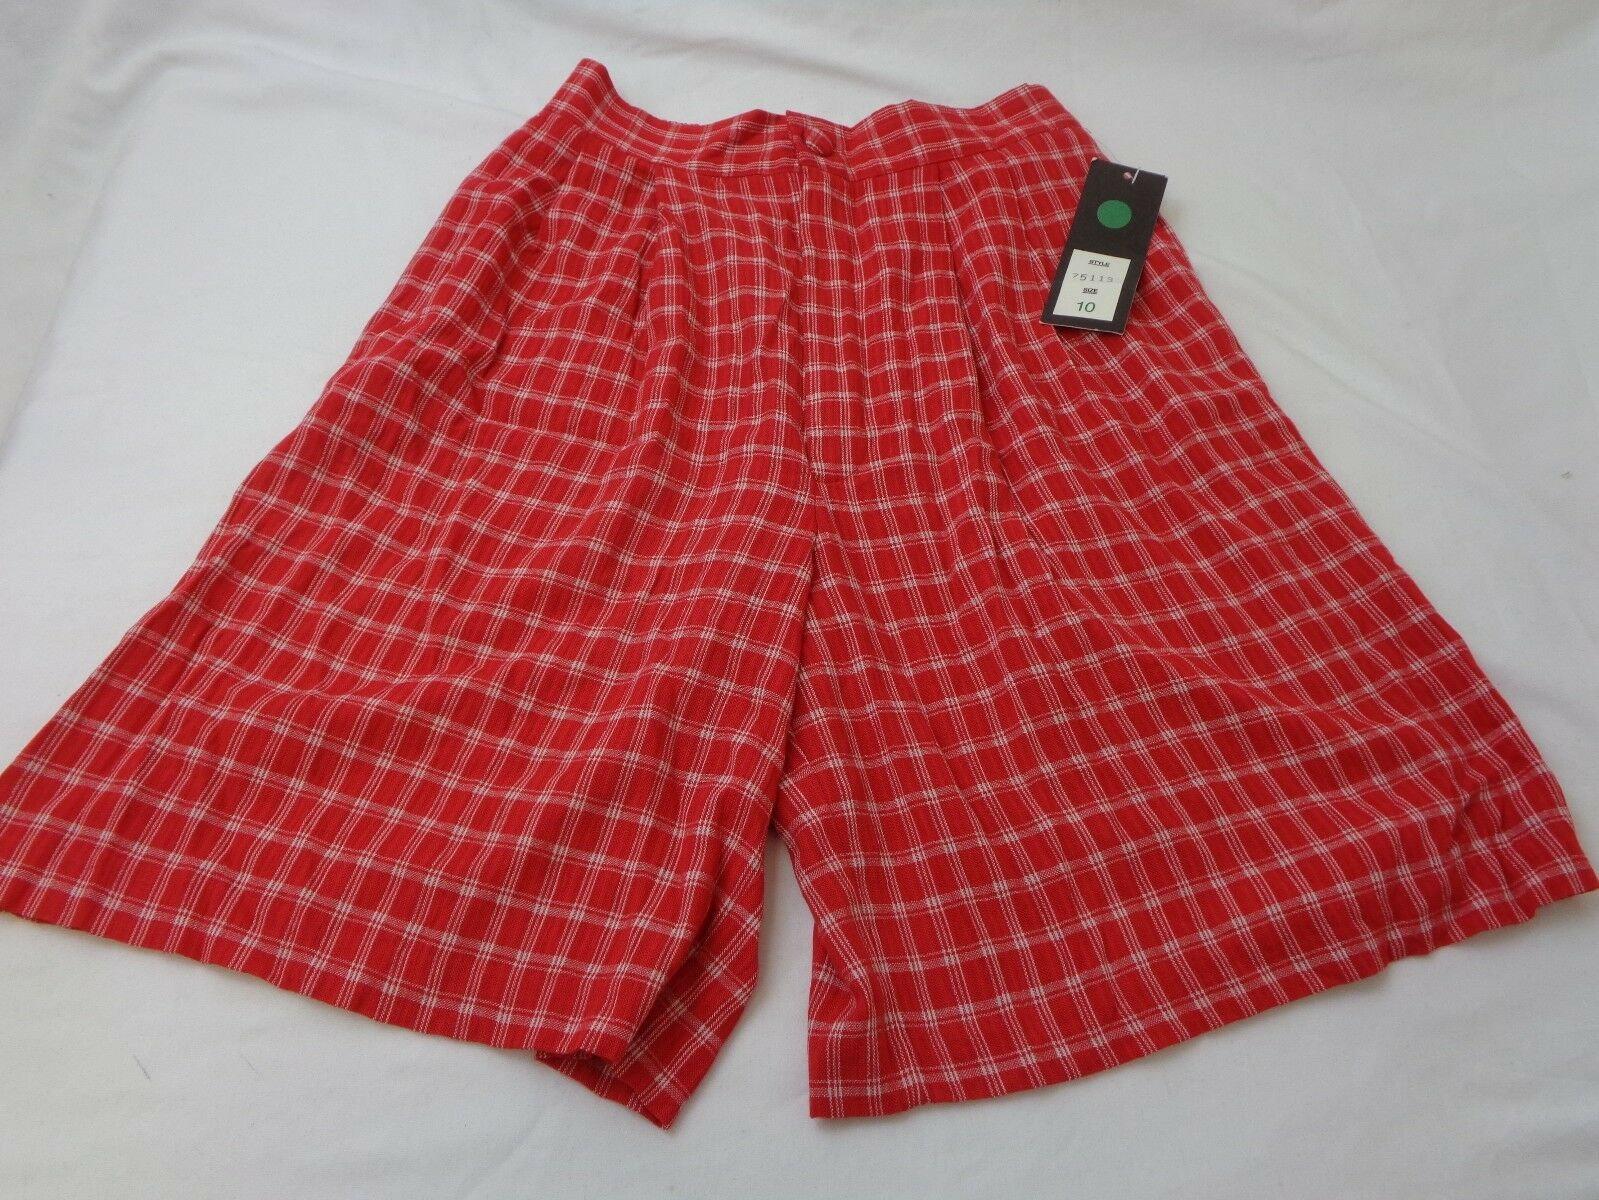 Ellen Figg Red Plaid Women's Shorts Size 10--NWT